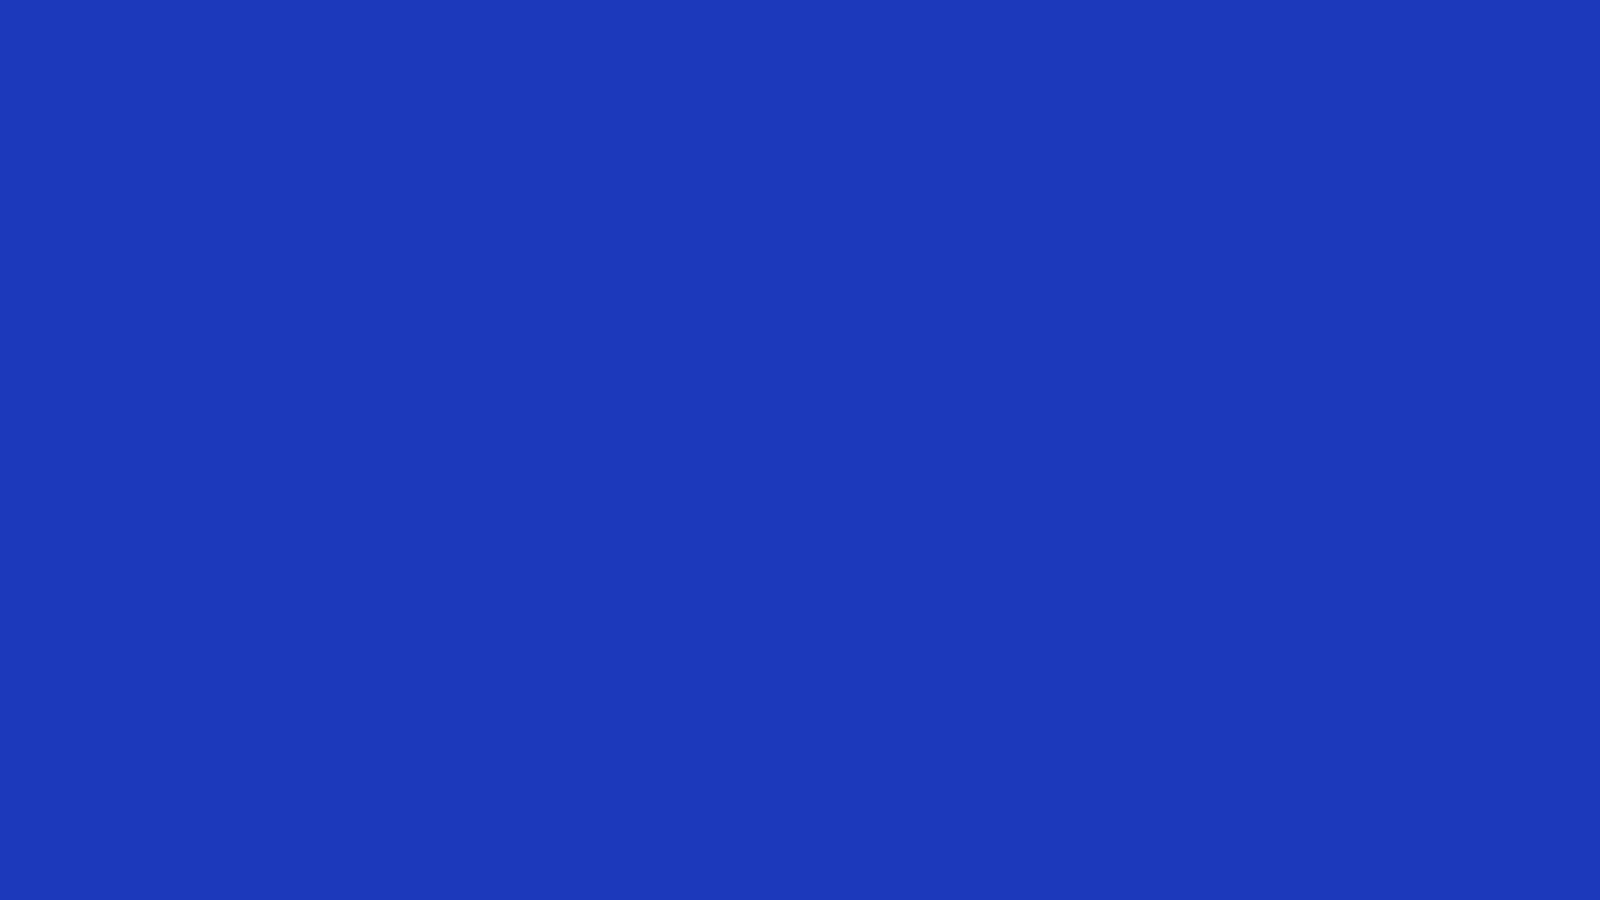 1600x900 Persian Blue Solid Color Background